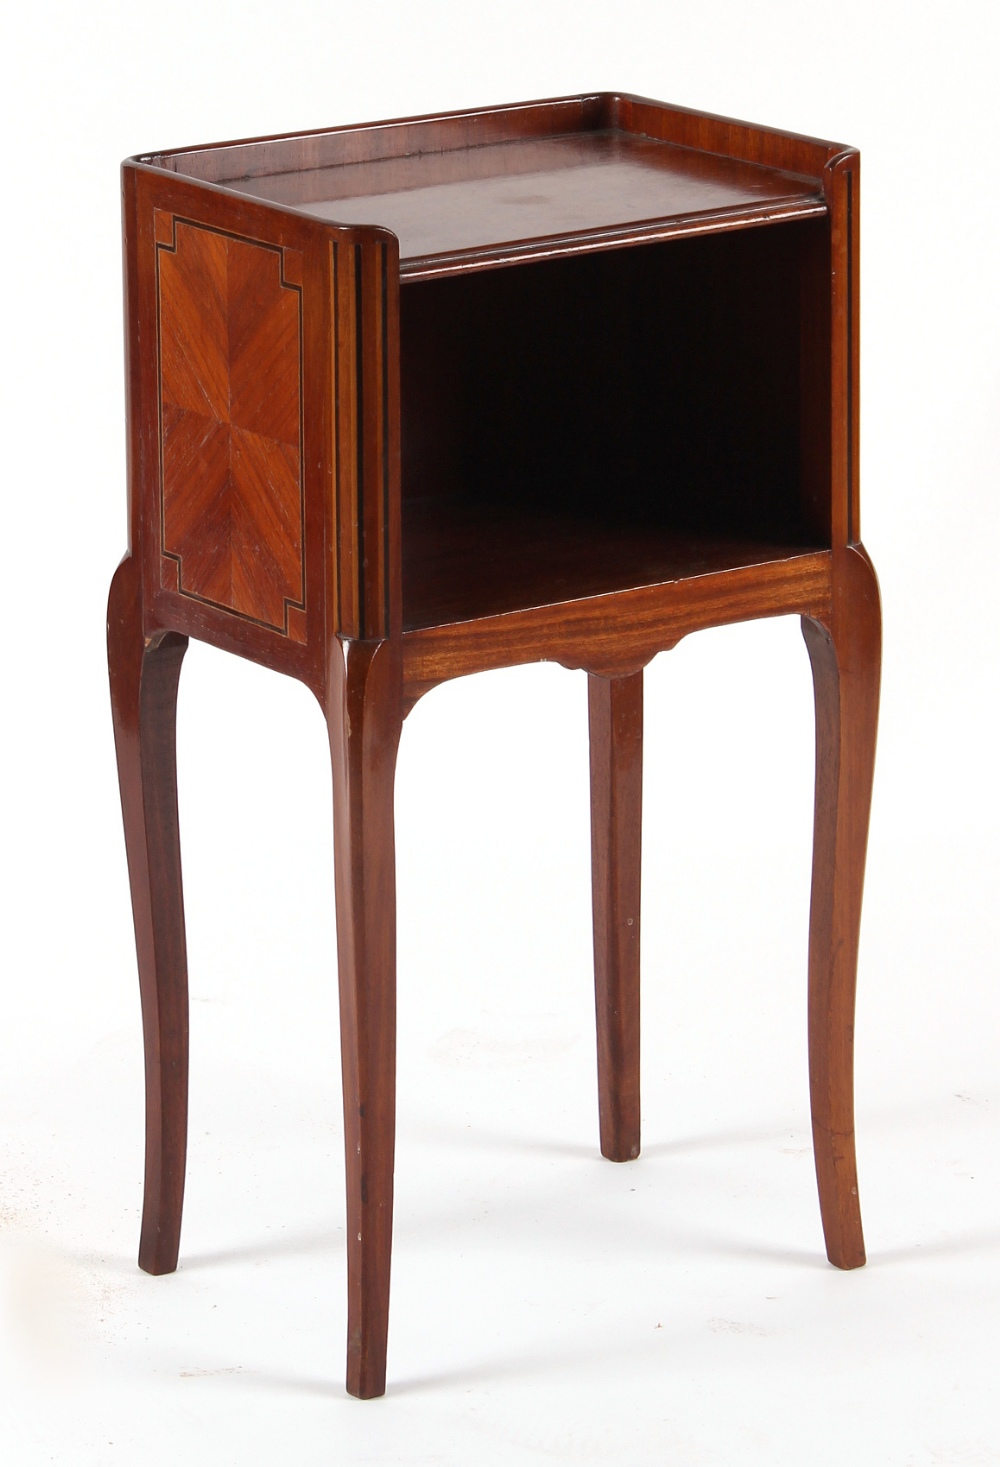 Lot 133 - Property of a gentleman - a French mahogany, kingwood & strung open bedside cupboard, with